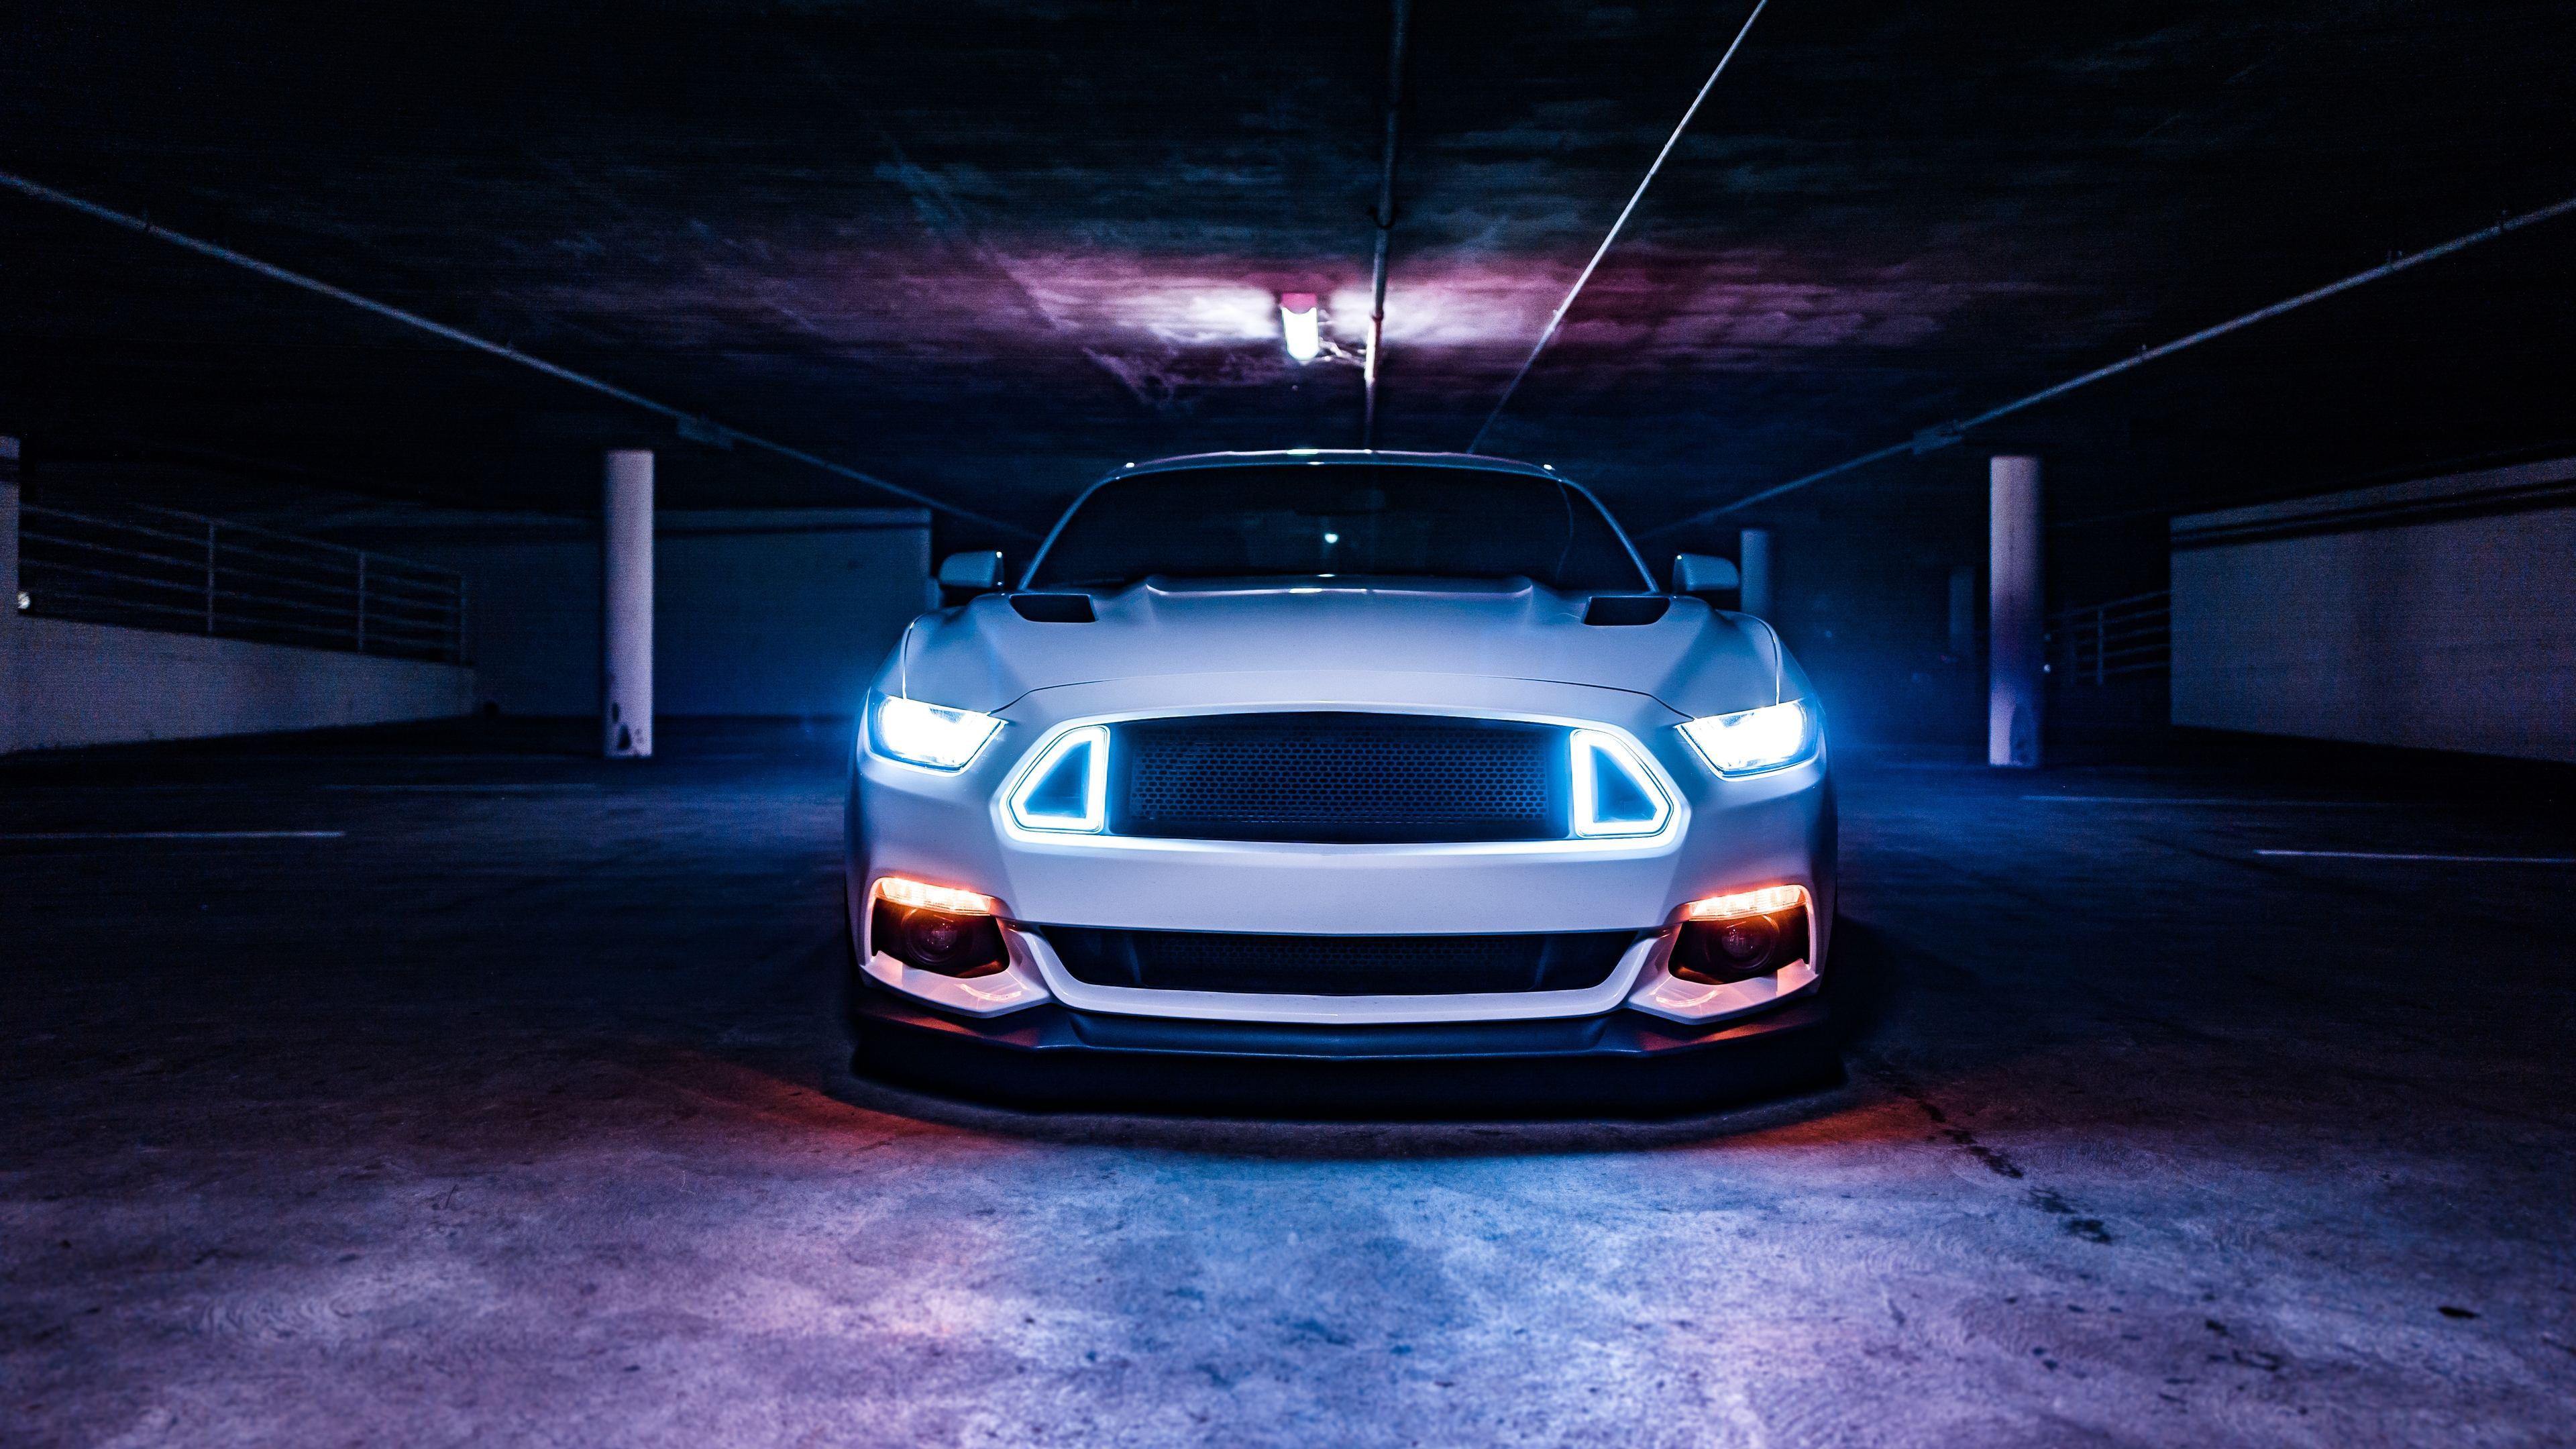 ford mustang neon lights 4k 1553075937 - Ford Mustang Neon Lights 4k - mustang wallpapers, hd-wallpapers, ford wallpapers, ford mustang wallpapers, cars wallpapers, 5k wallpapers, 4k-wallpapers, 2019 cars wallpapers